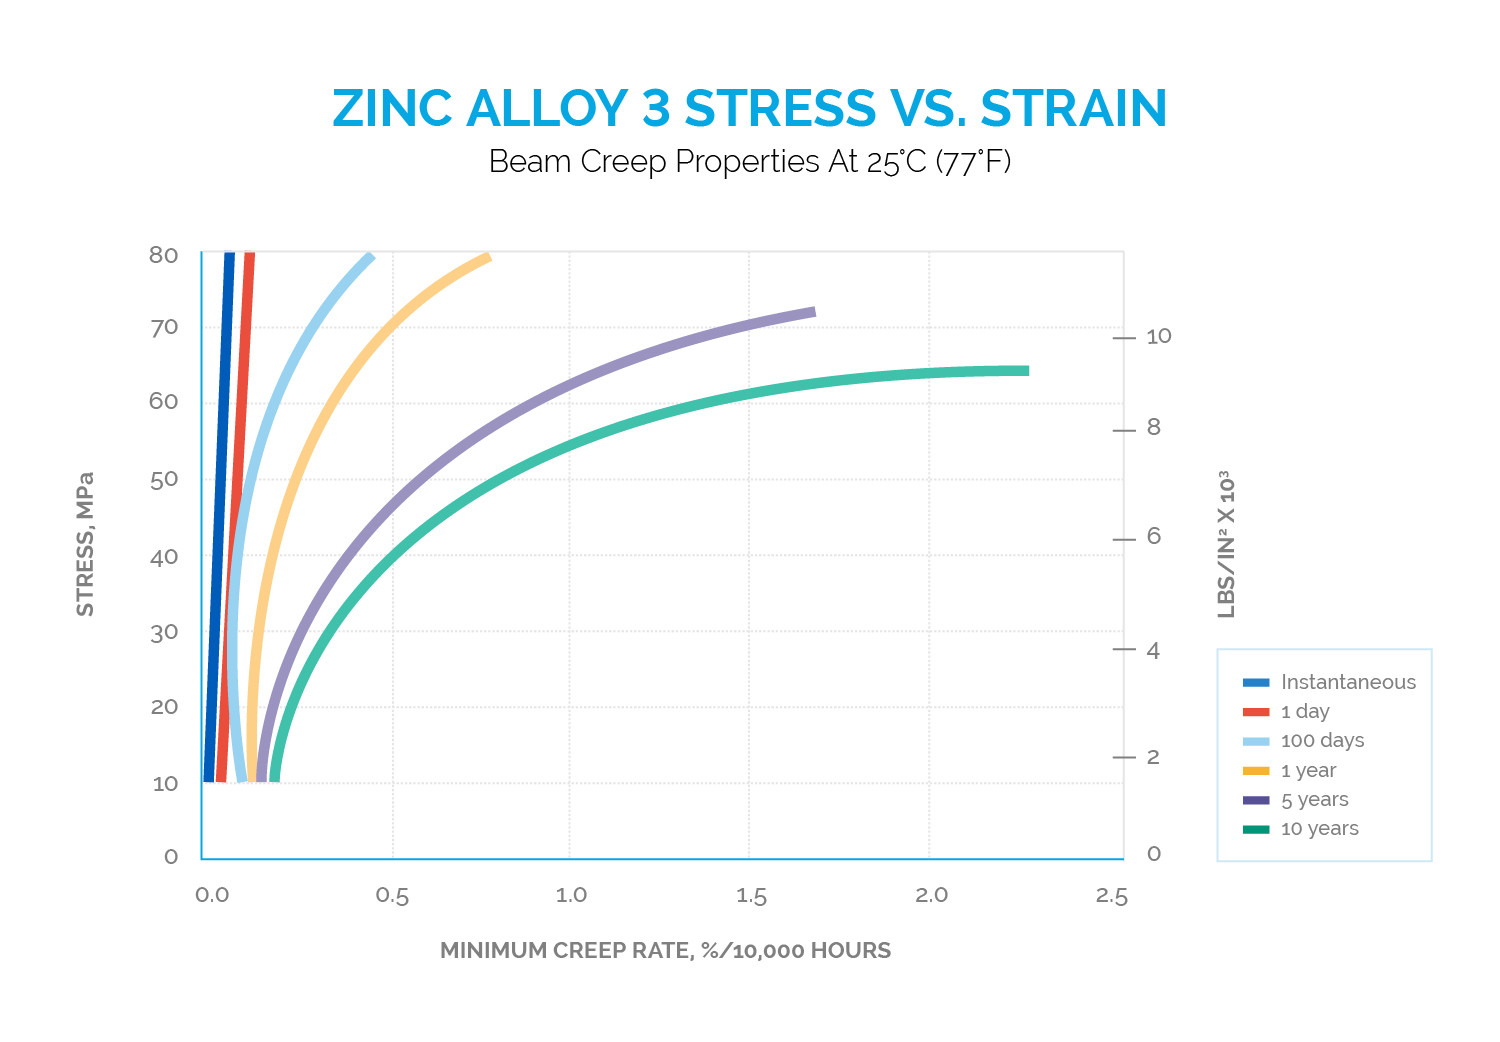 Beam Creep Properties of Zinc Alloy 3 Stress Vs. Strain - Dynacast Zinc Die Casting